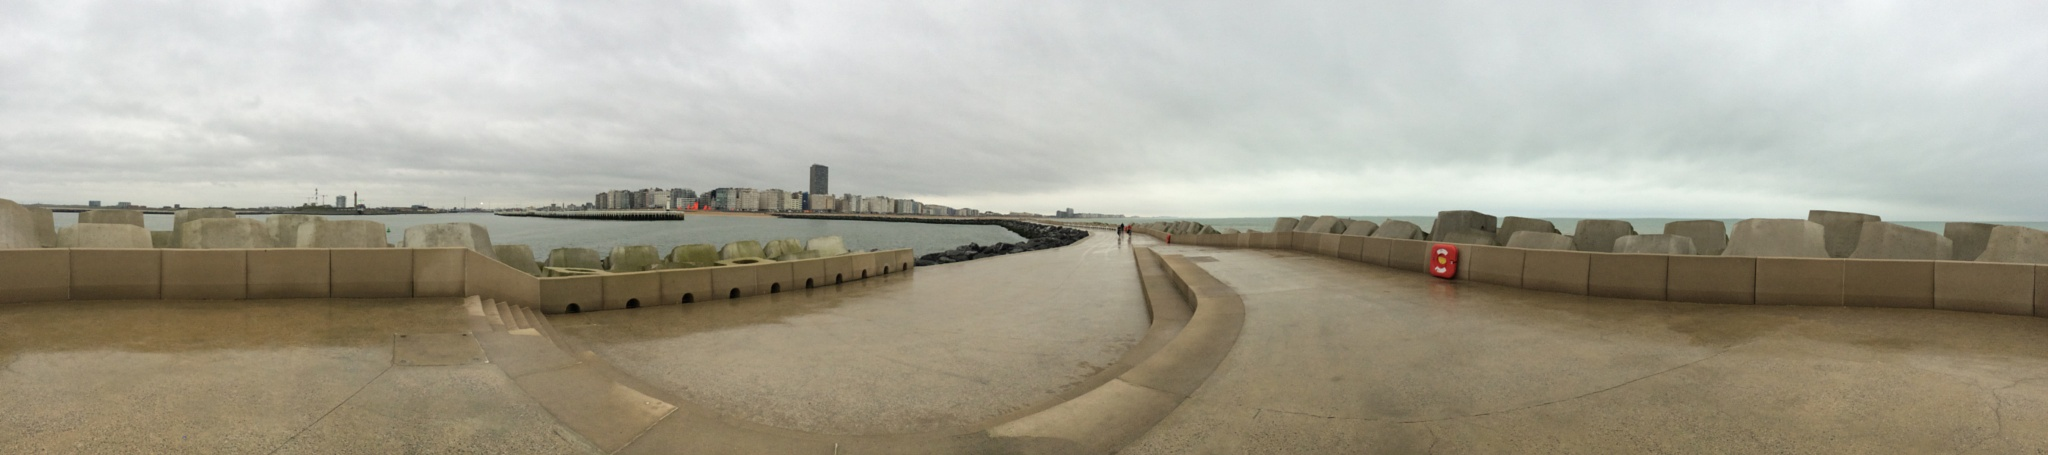 other skyline of Ostend Panorama by Marc Verlee